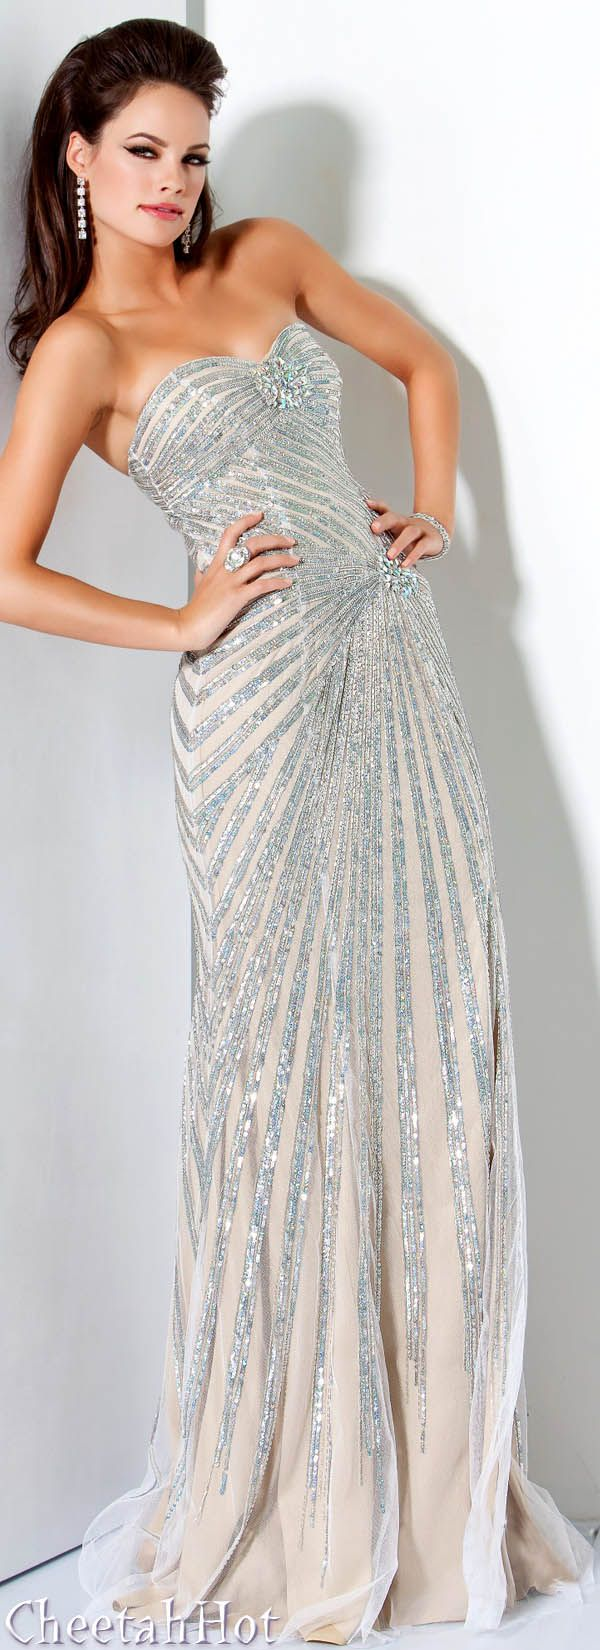 JOVANI - Authentic Designer Dress - Silver/Nude Strapless Gown